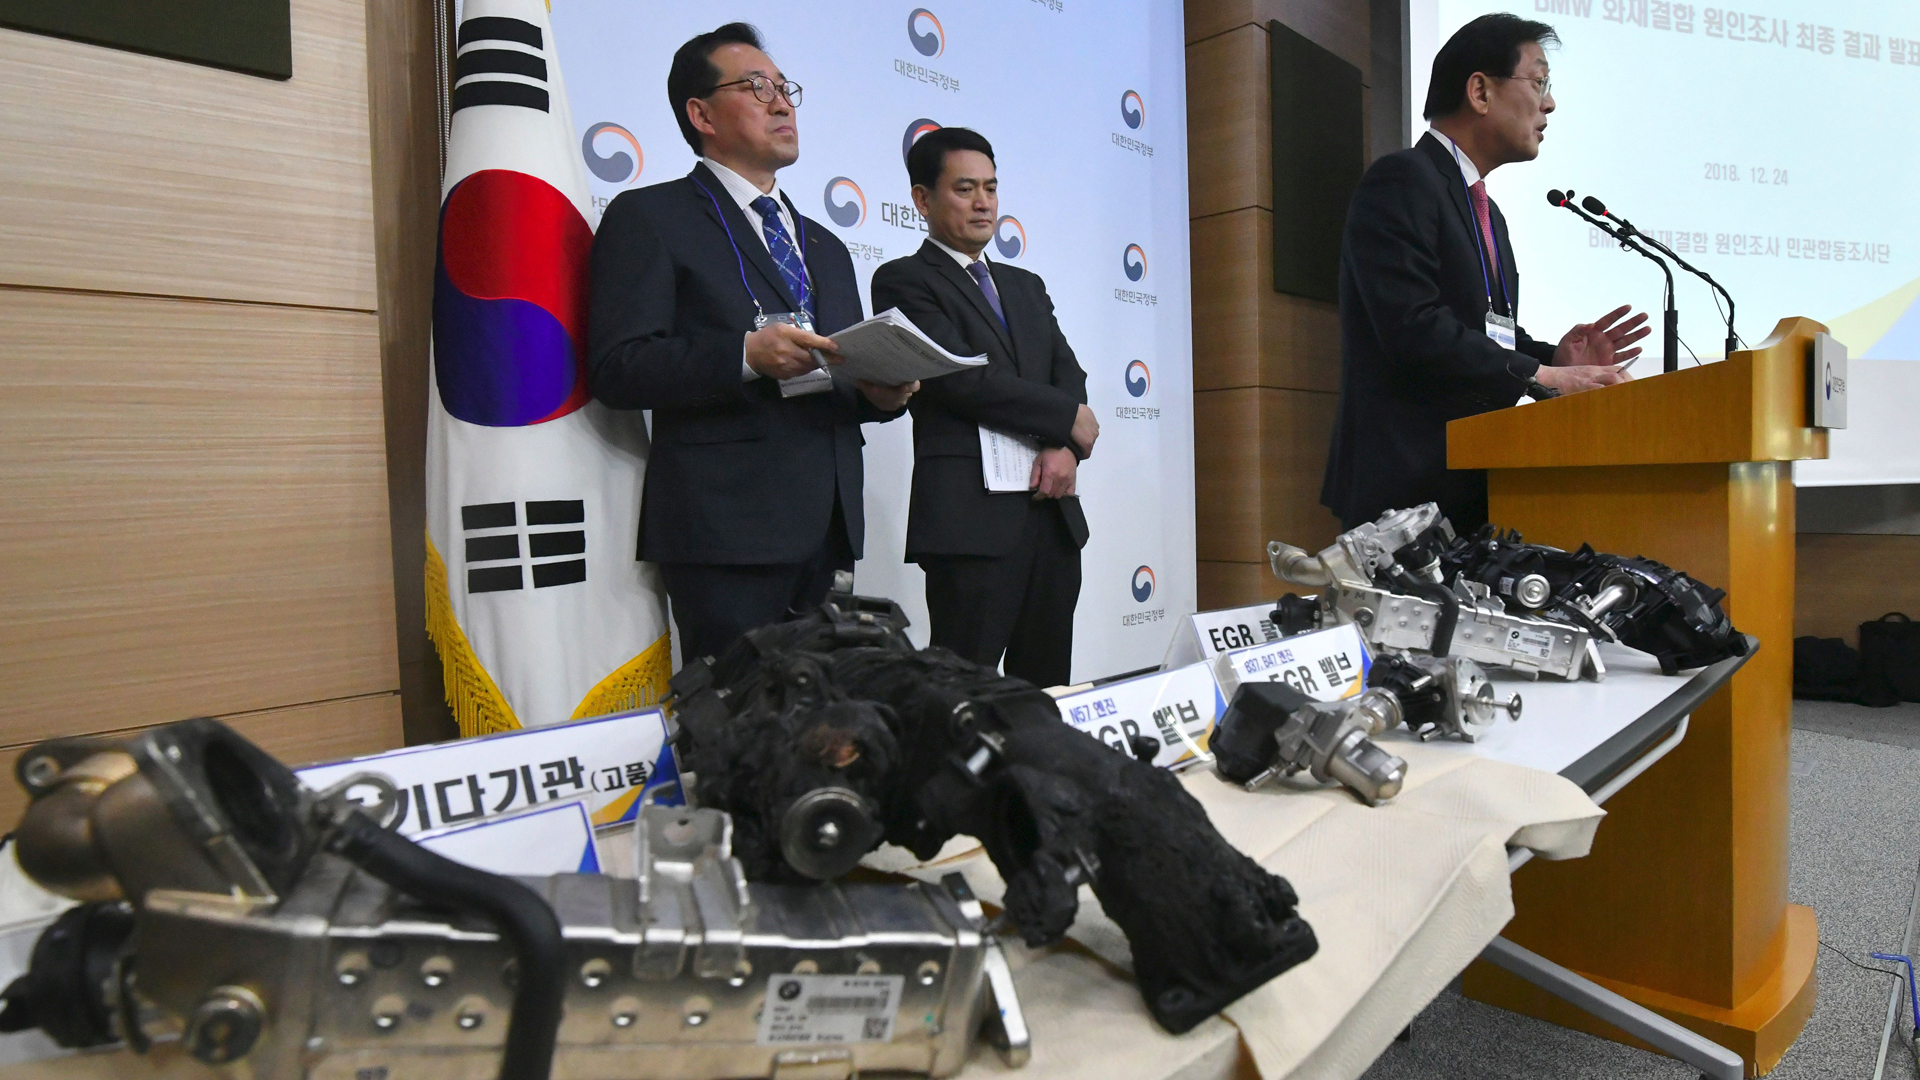 Parts of a burnt BMW car are displayed on a table during a press conference announcing the result of a five-month joint probe into BMW car engine fires, held at the South Korean government complex in Seoul on Dec. 24, 2018. (Credit: Jung Yeon-Je/AFP/Getty Images)